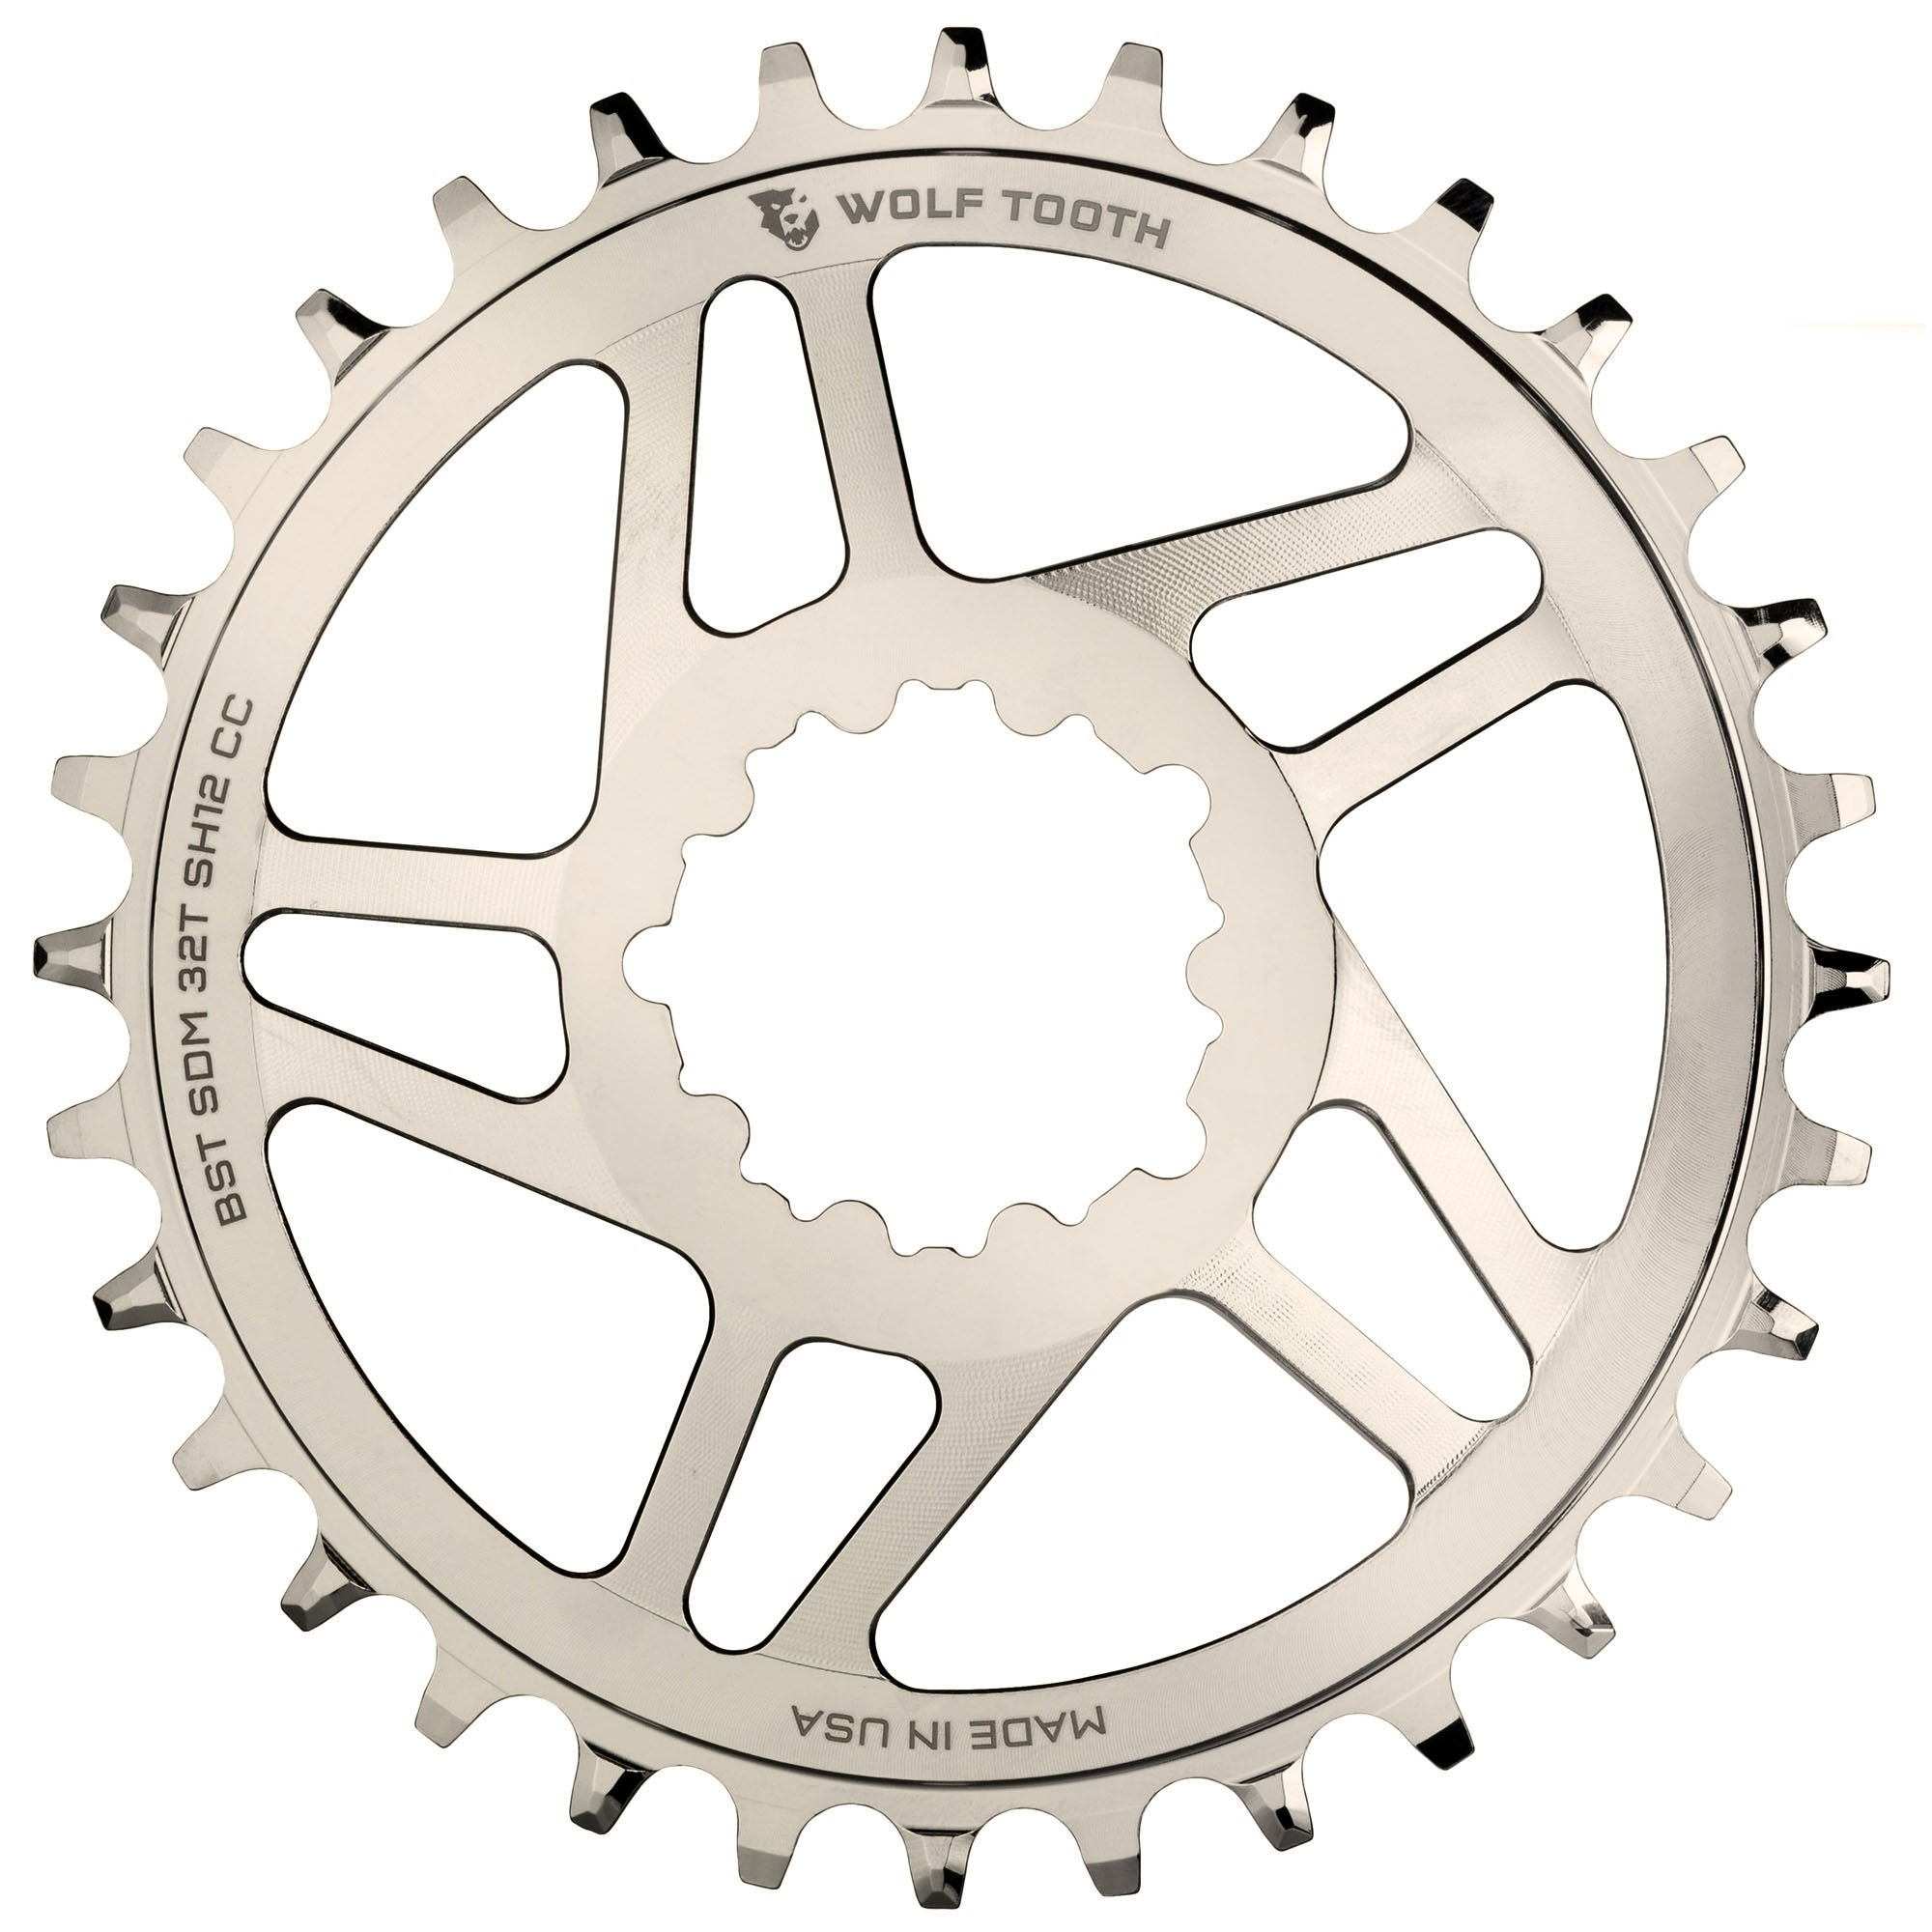 Drift-chain dpm for shimano and sram